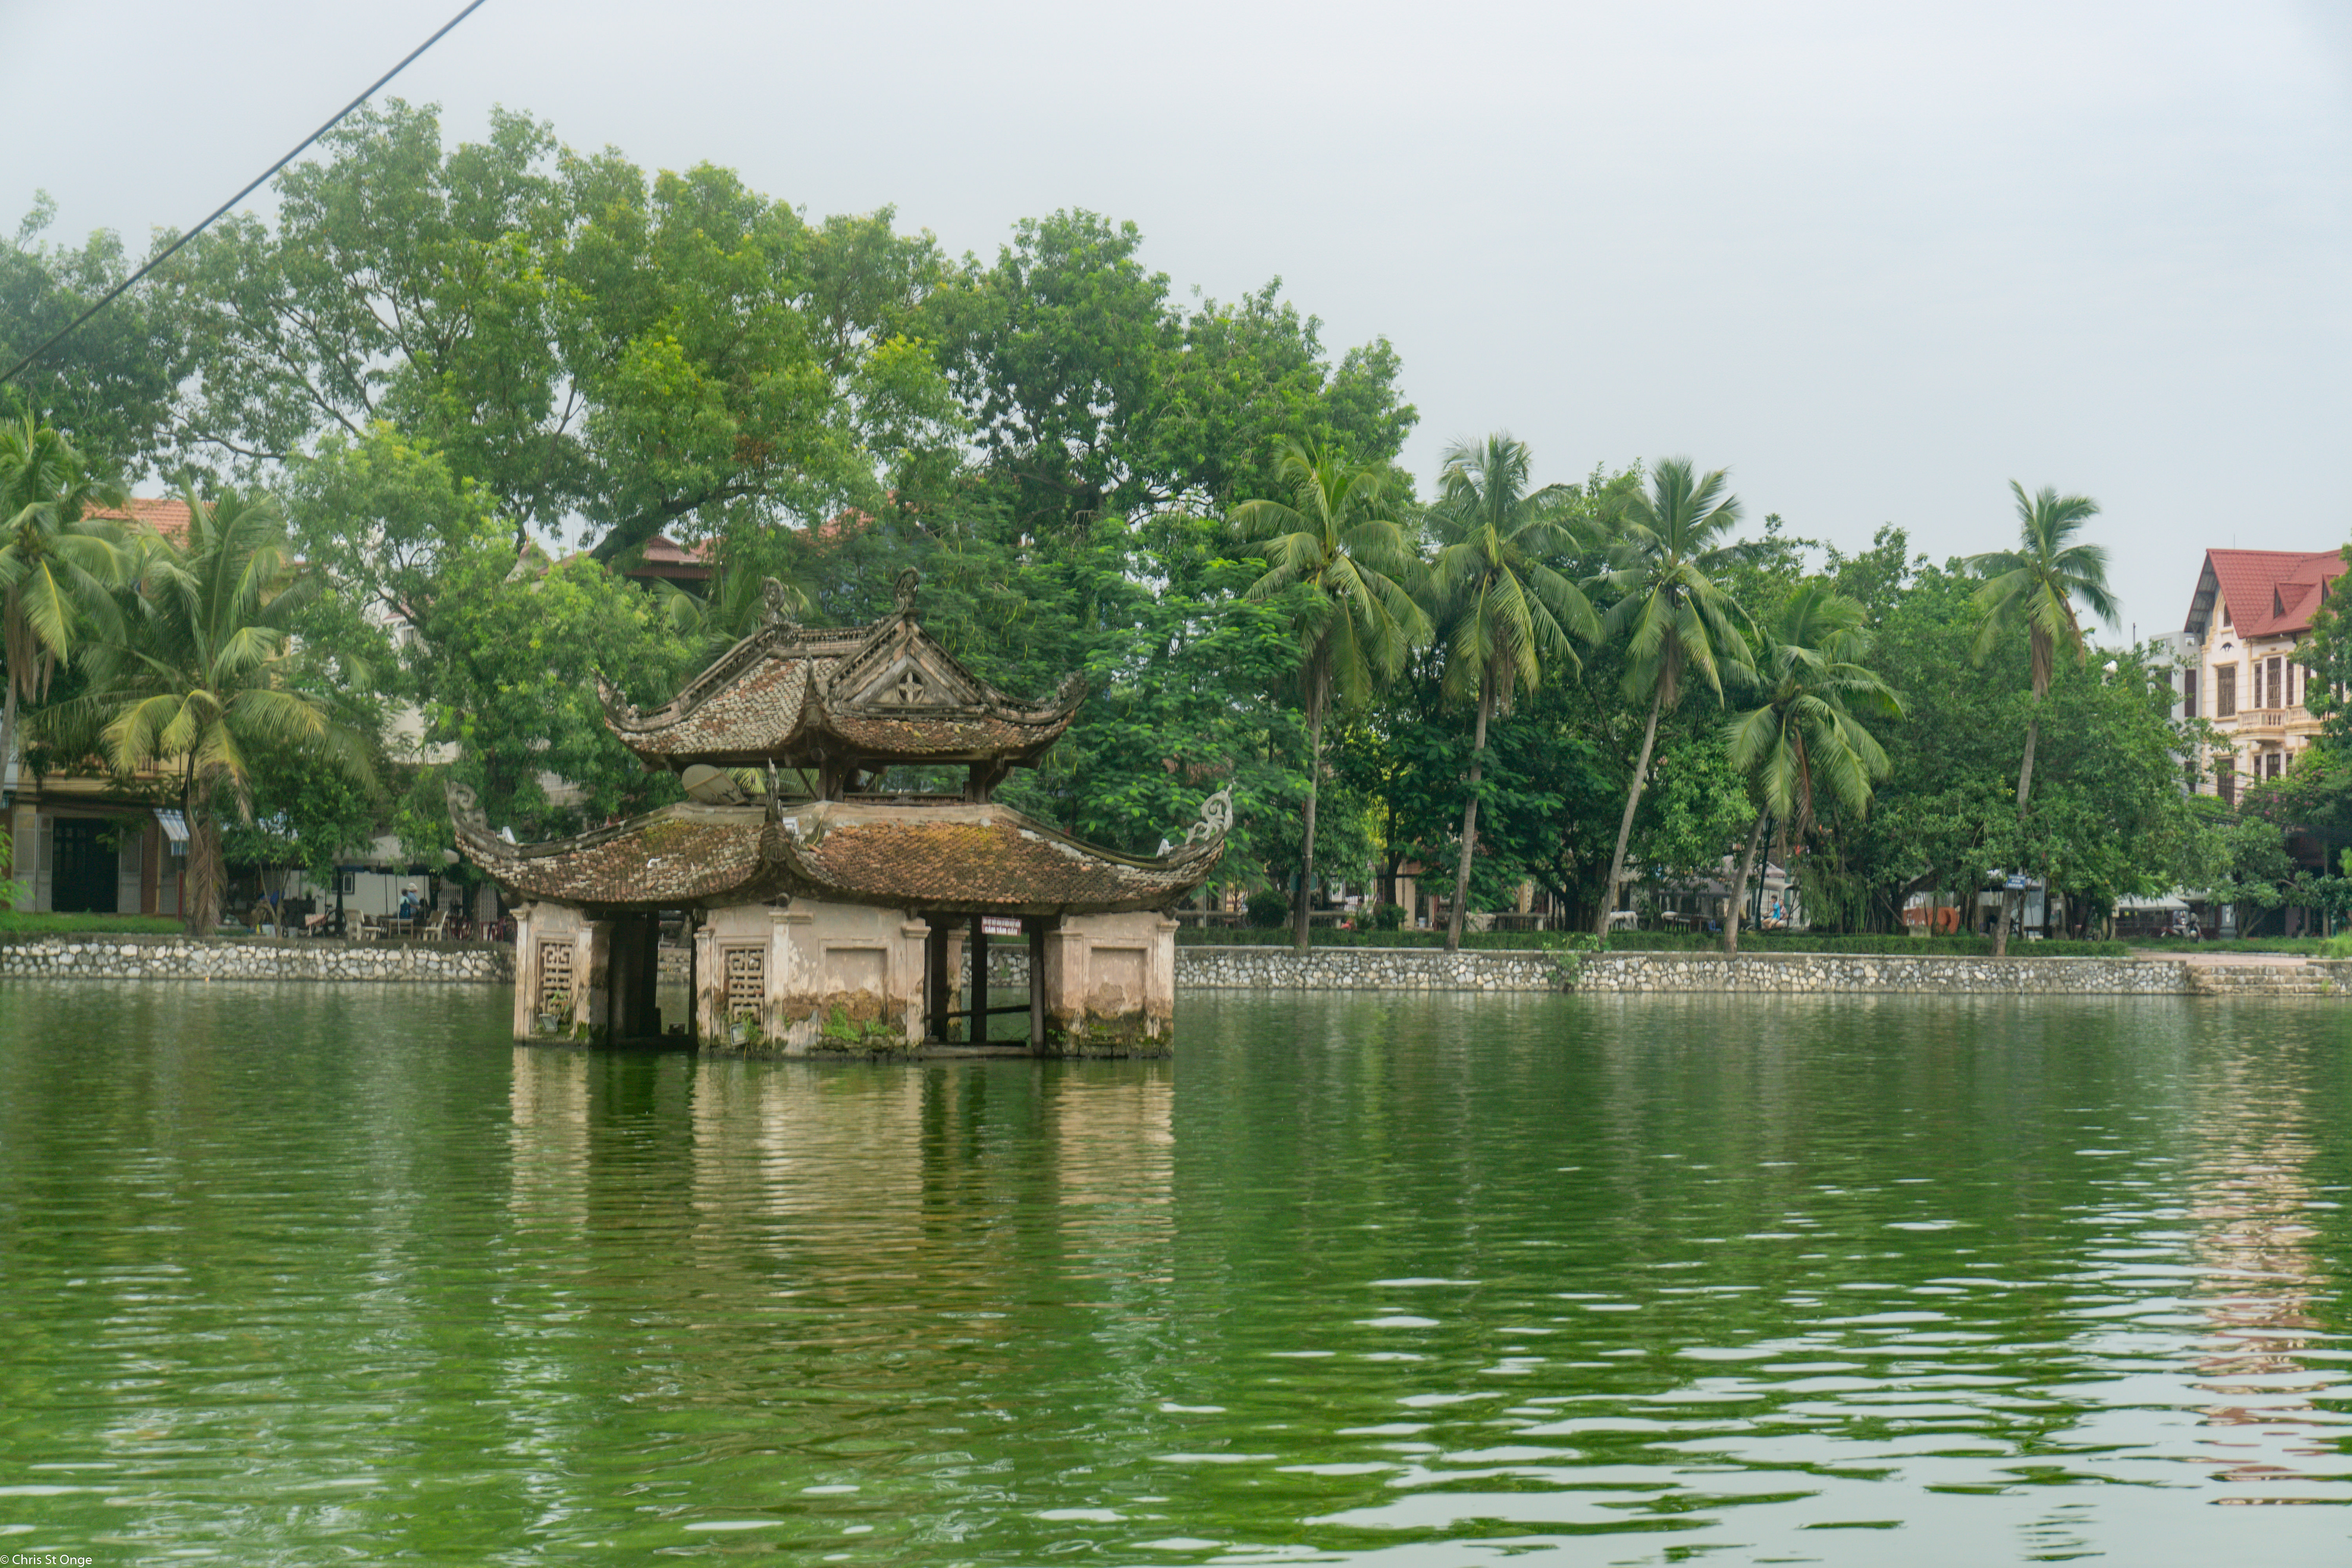 A day trip to Thay Pagoda